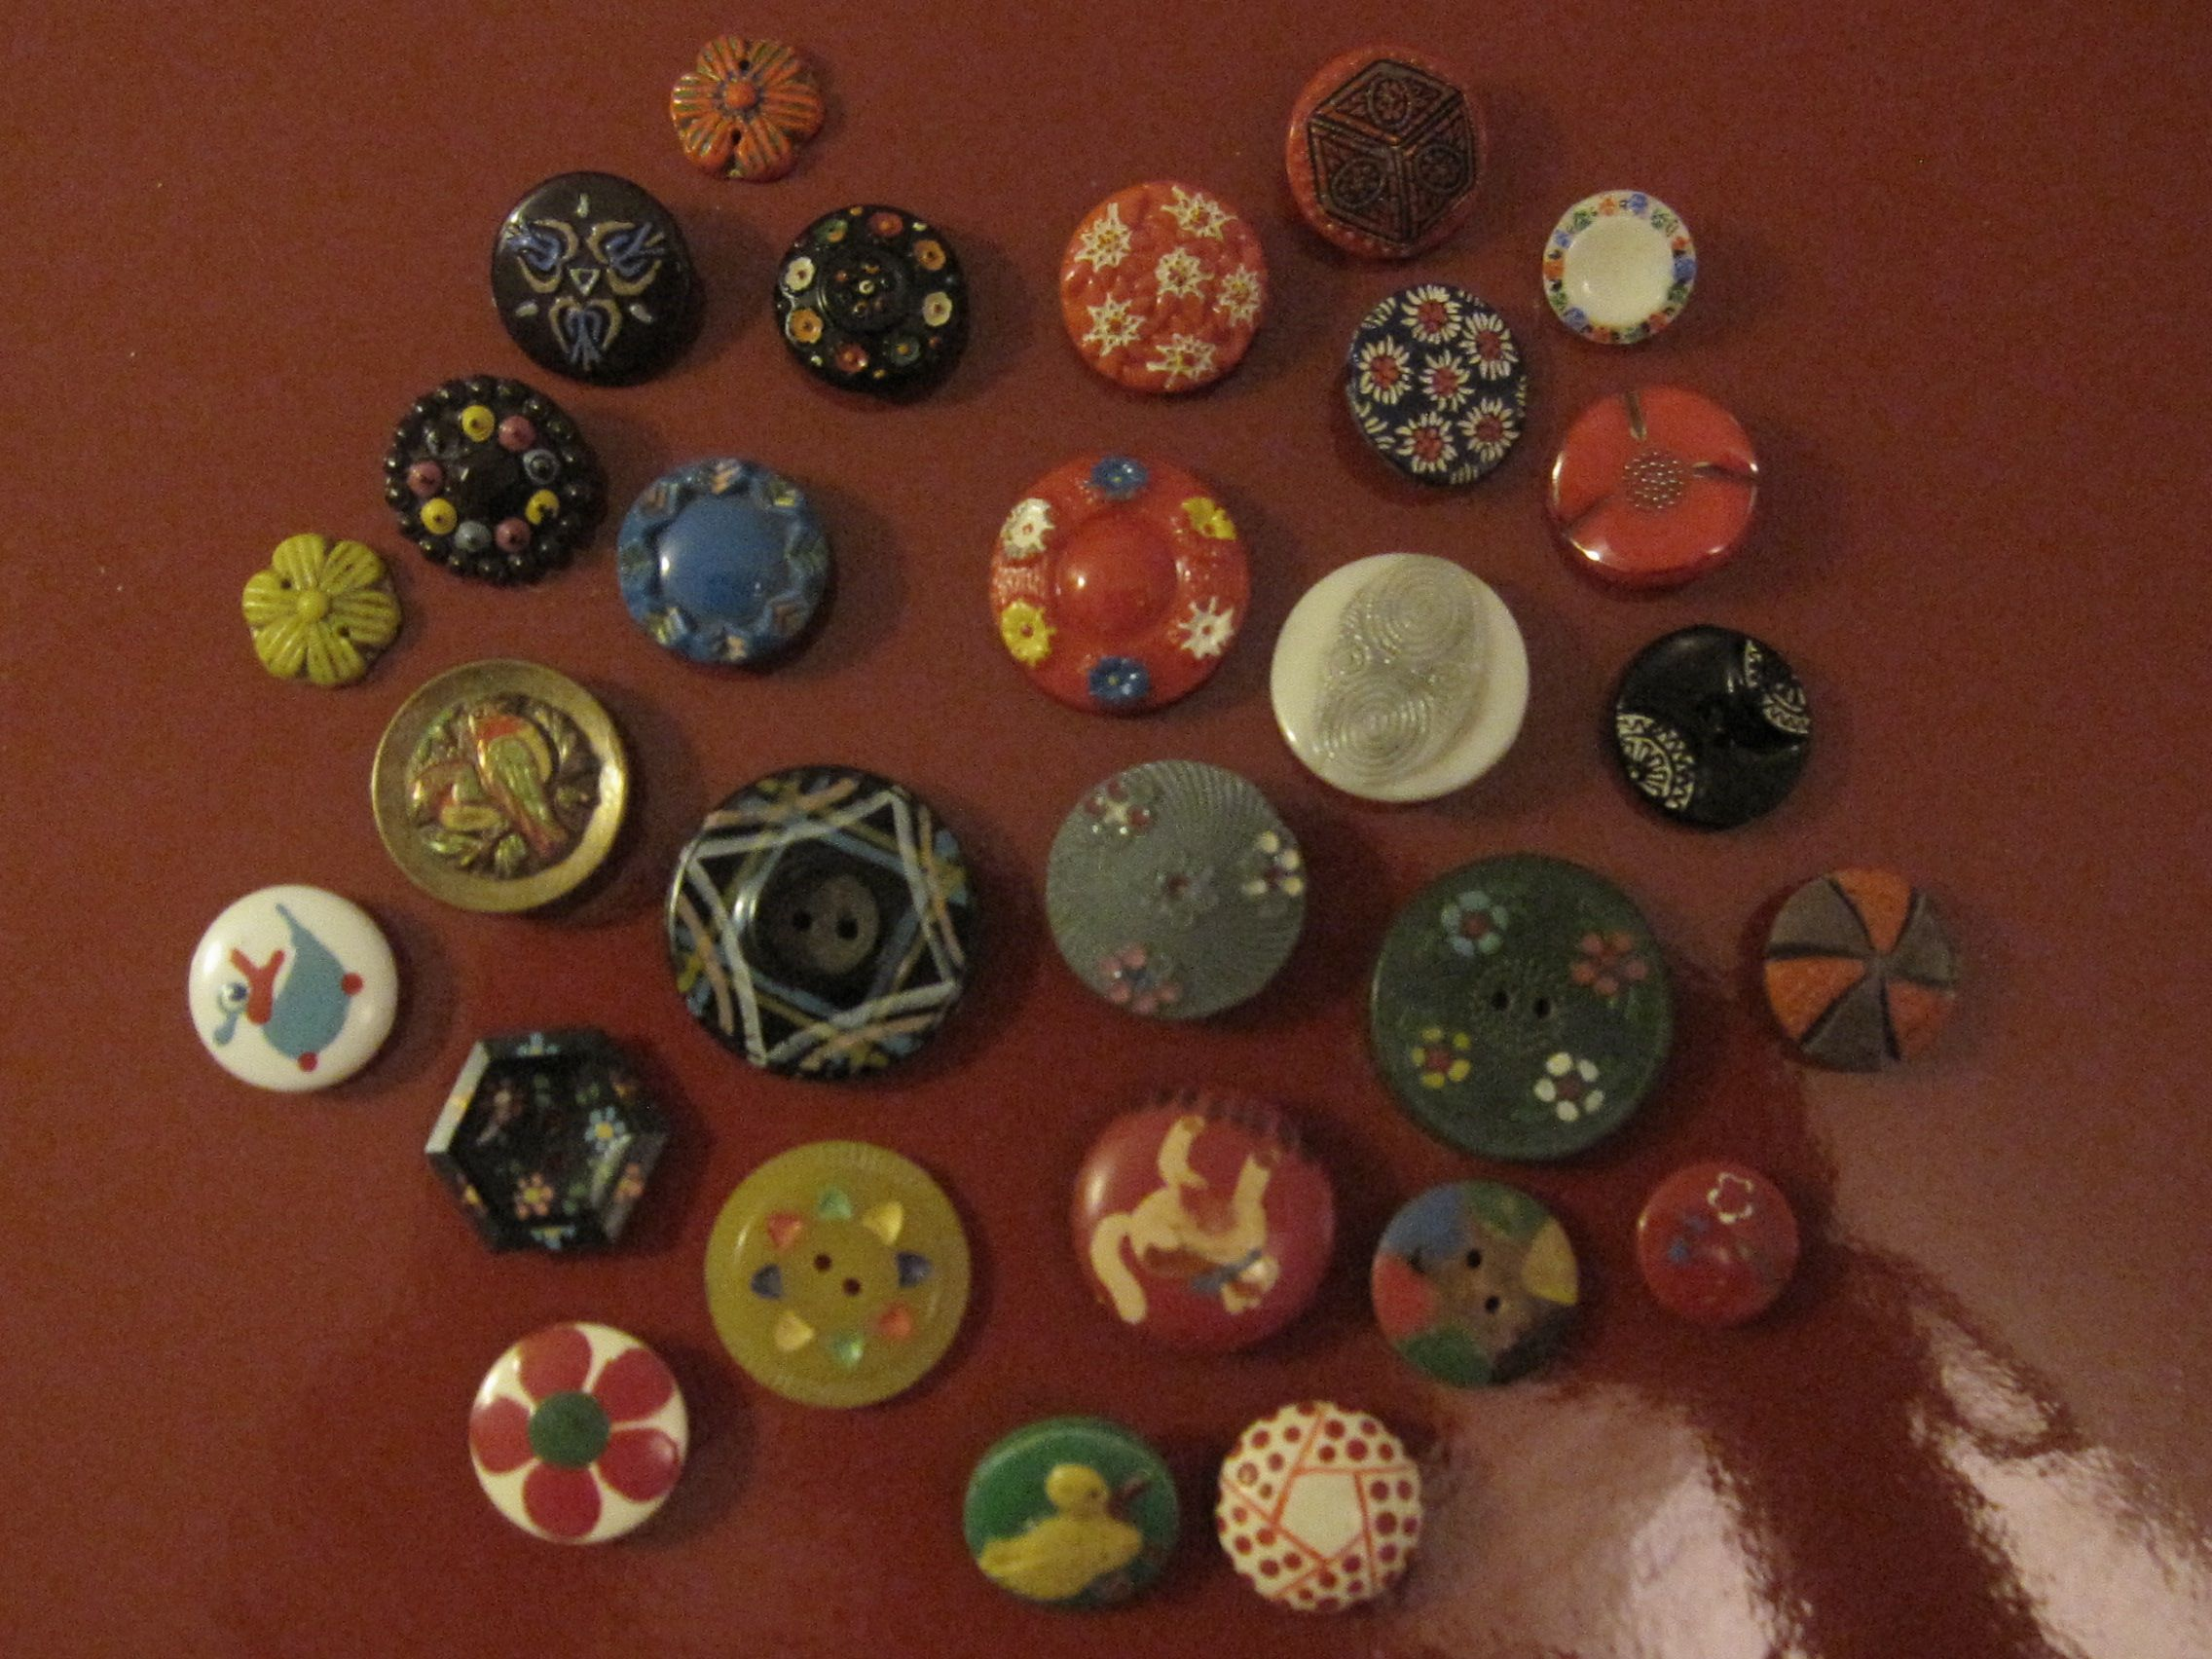 objets : collection, mes boutons peints